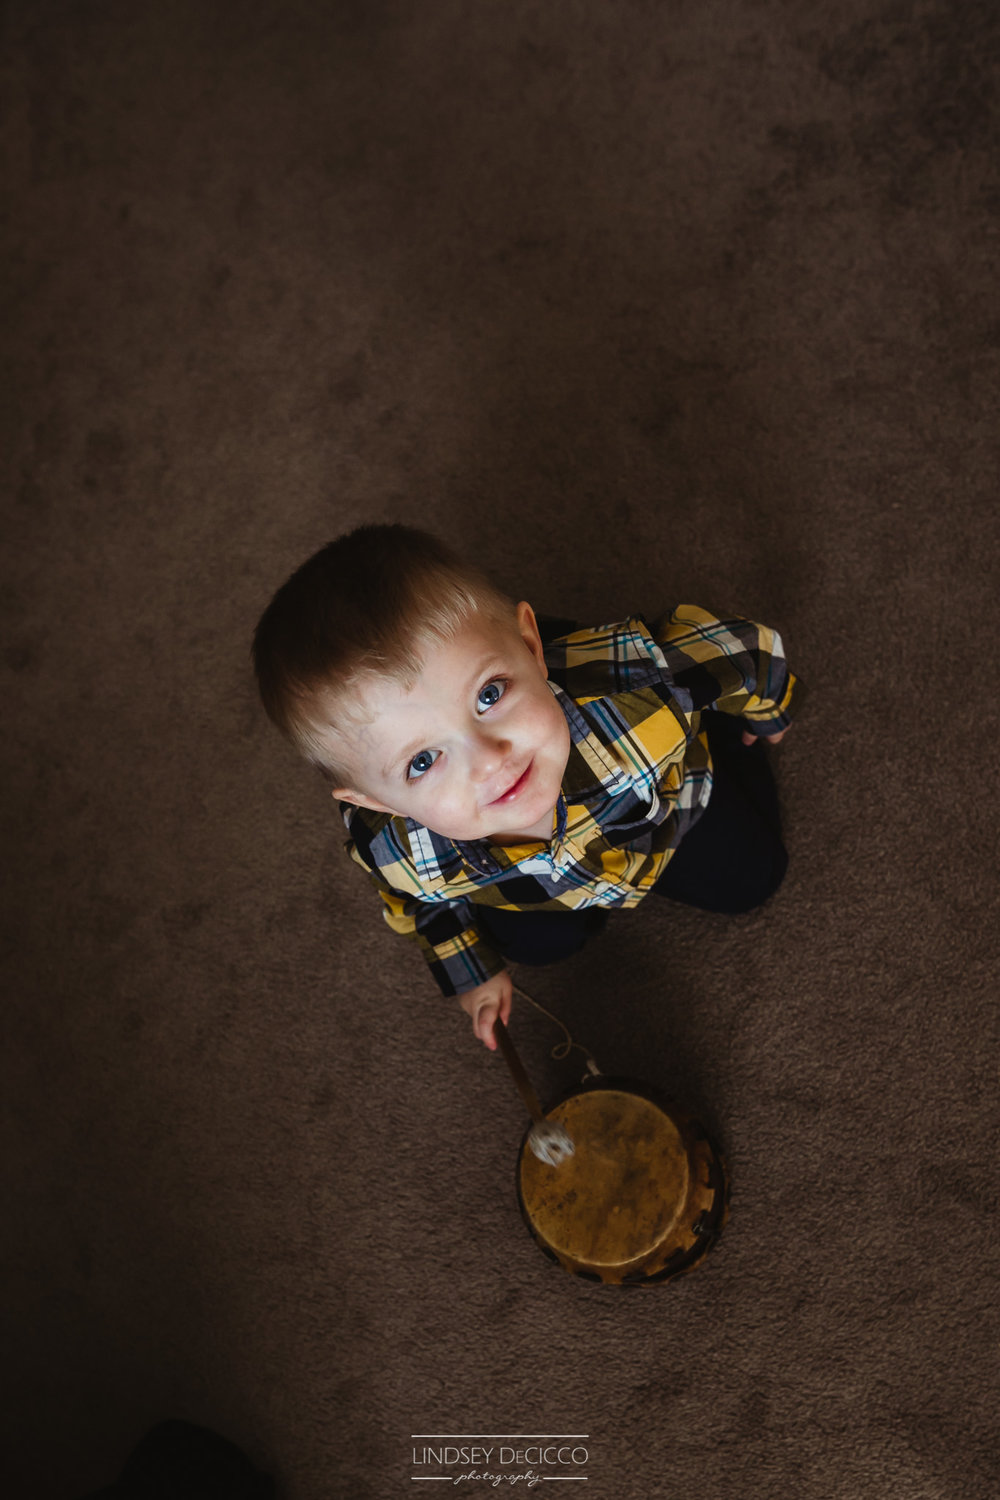 Older brother playing with his drum